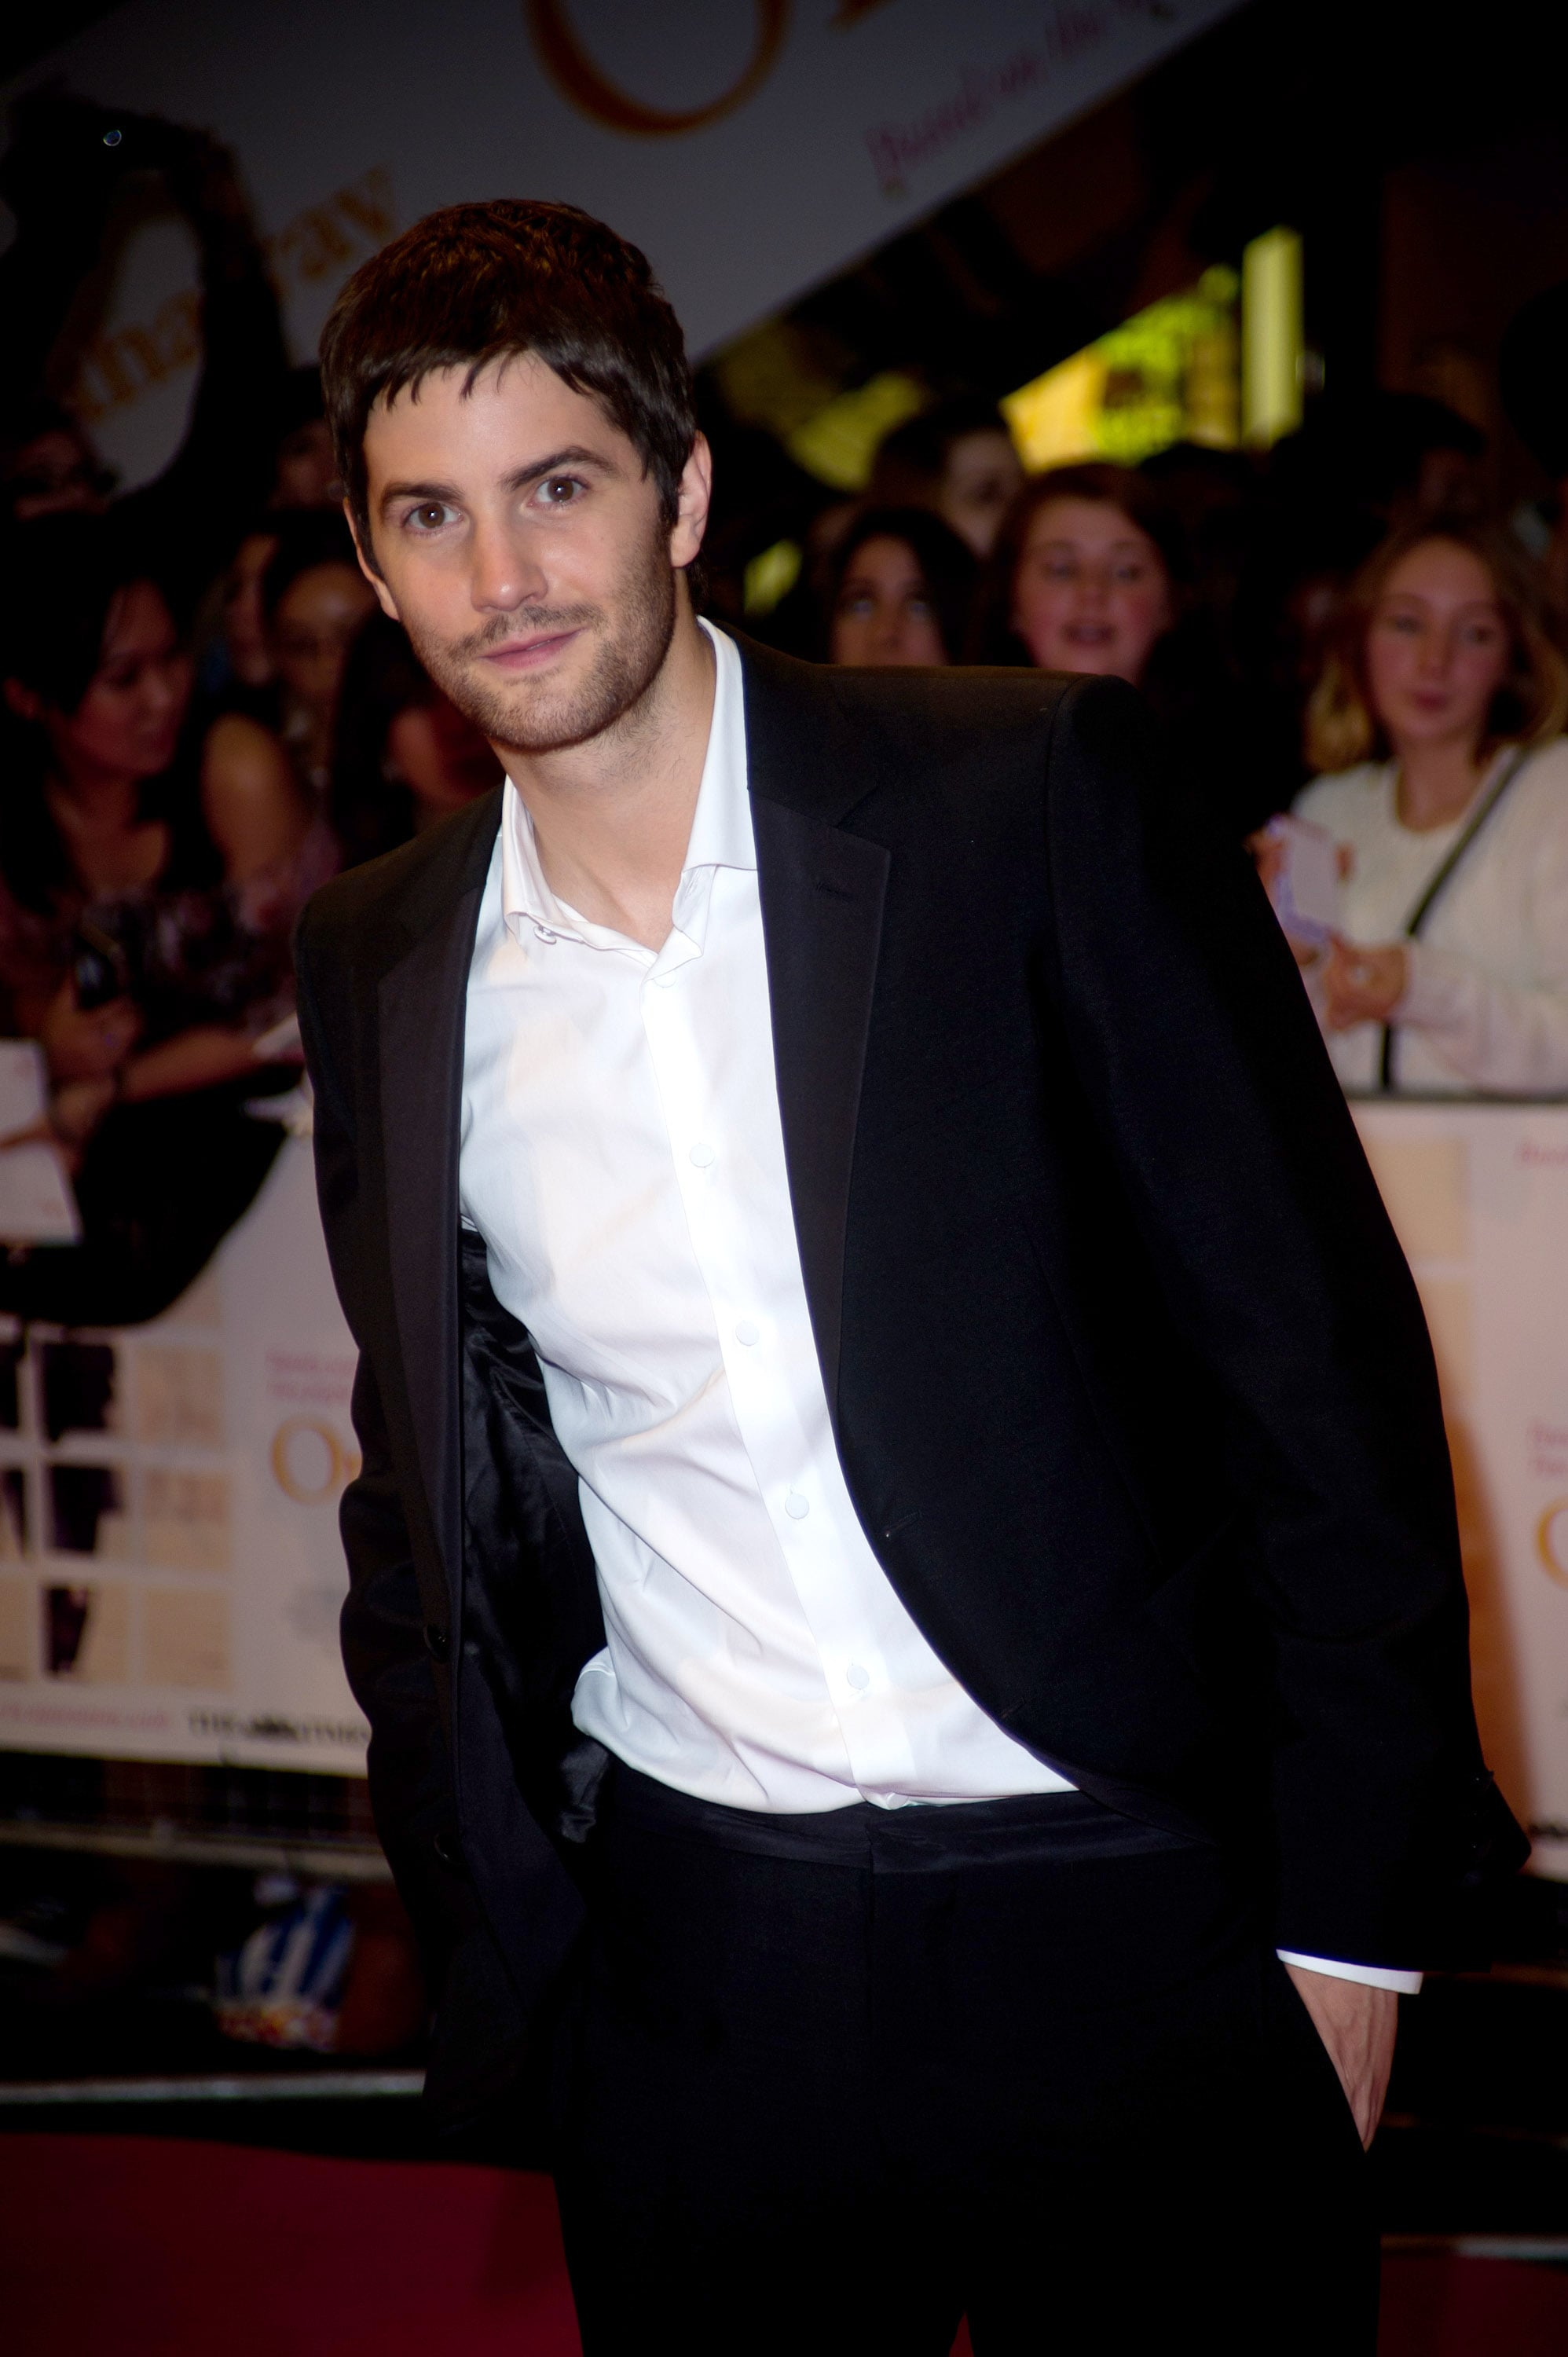 Jim Sturgess stepped out on the red carpet.